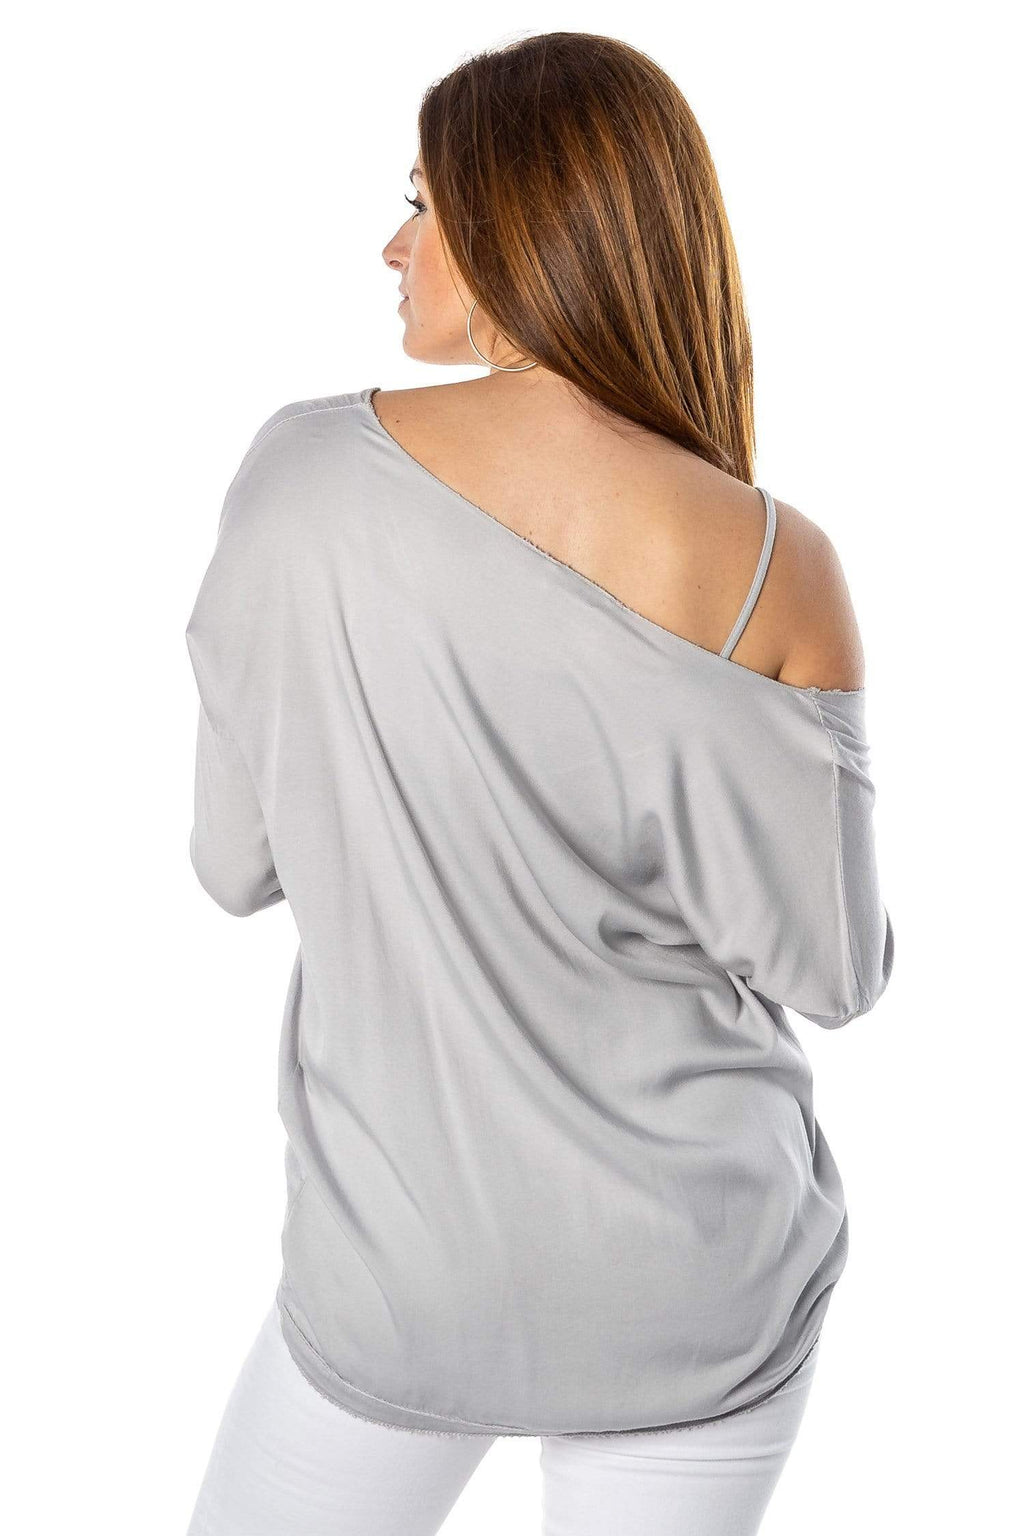 shop-sofia Alice Top Sofia Collections Italian Silk Linen Satin